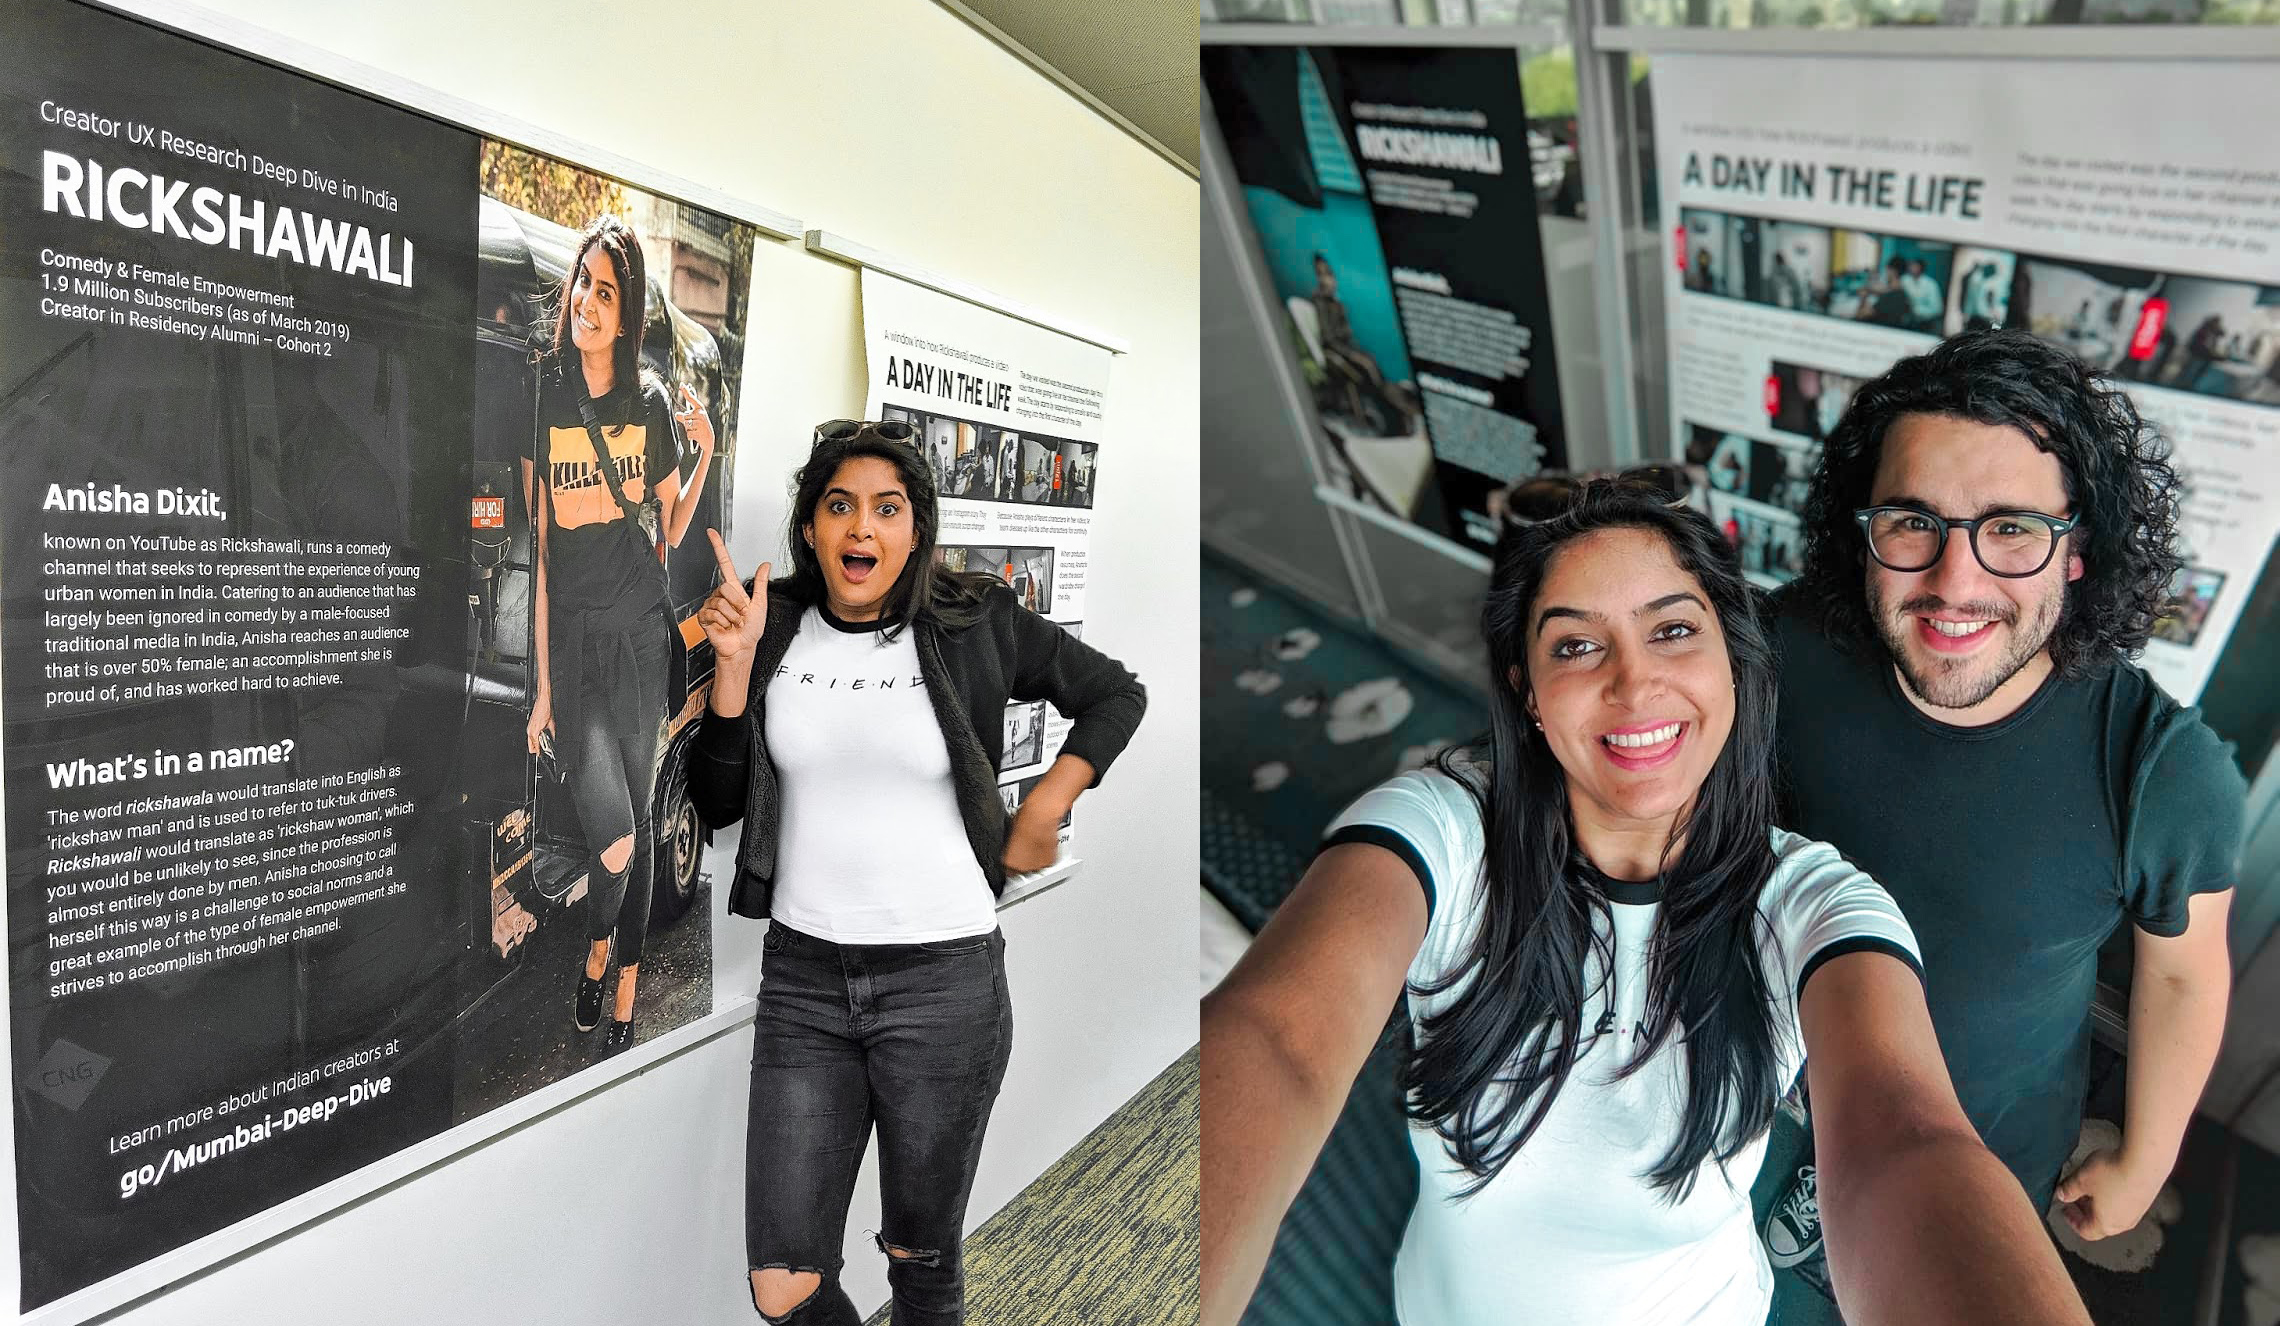 A few months after Renato's visit in Mumbai, they both met again in Zurich where Anisha loved seeing images of her production day exhibited around the local Google office.